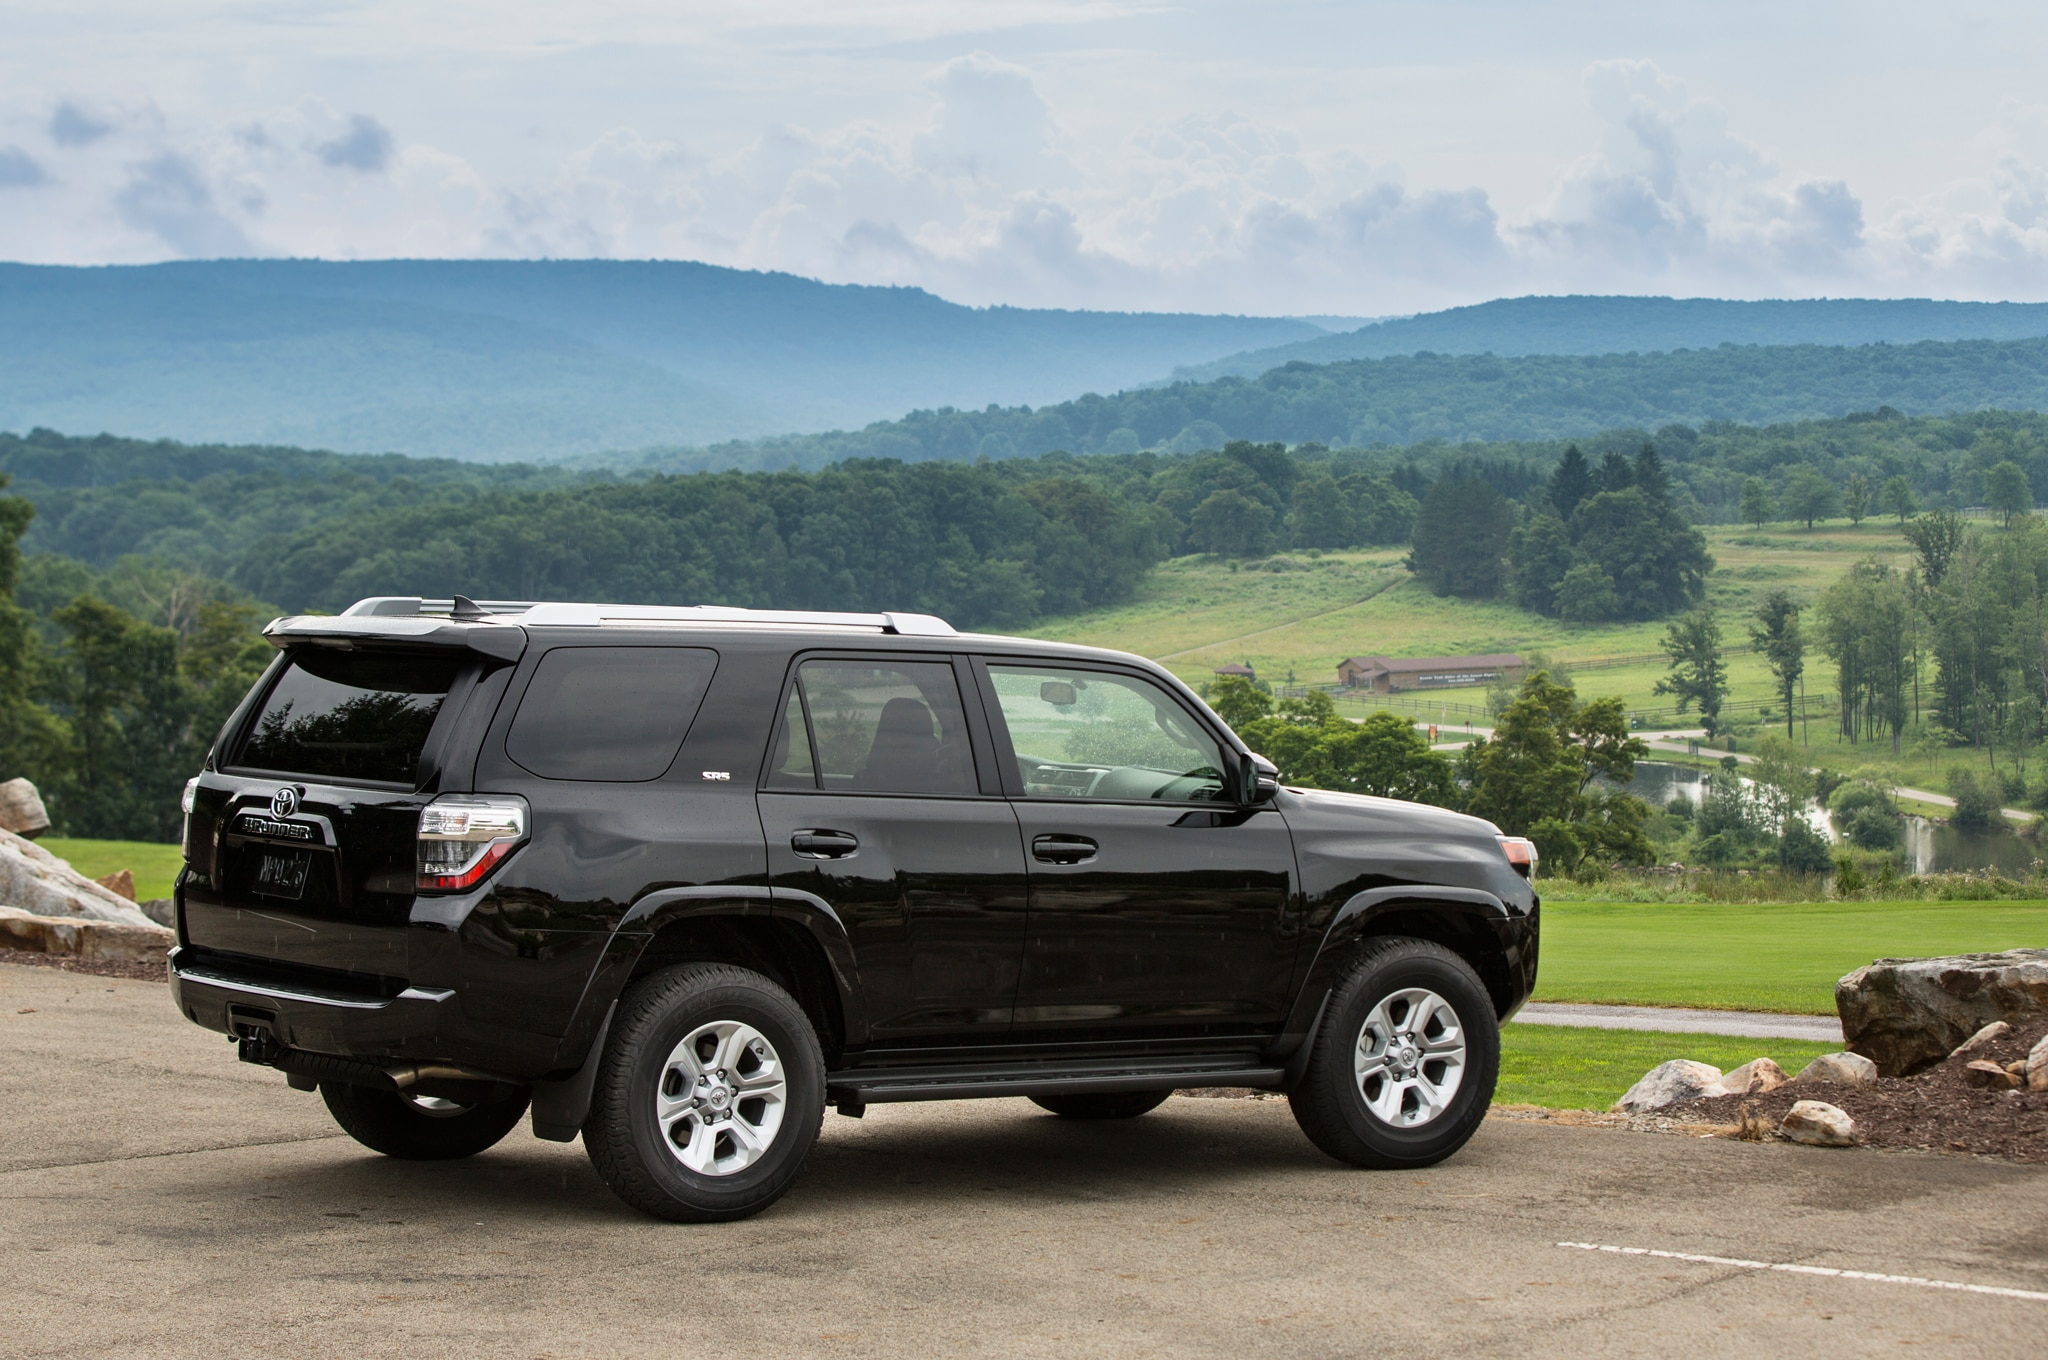 2014 Toyota 4runner SR5 rear view